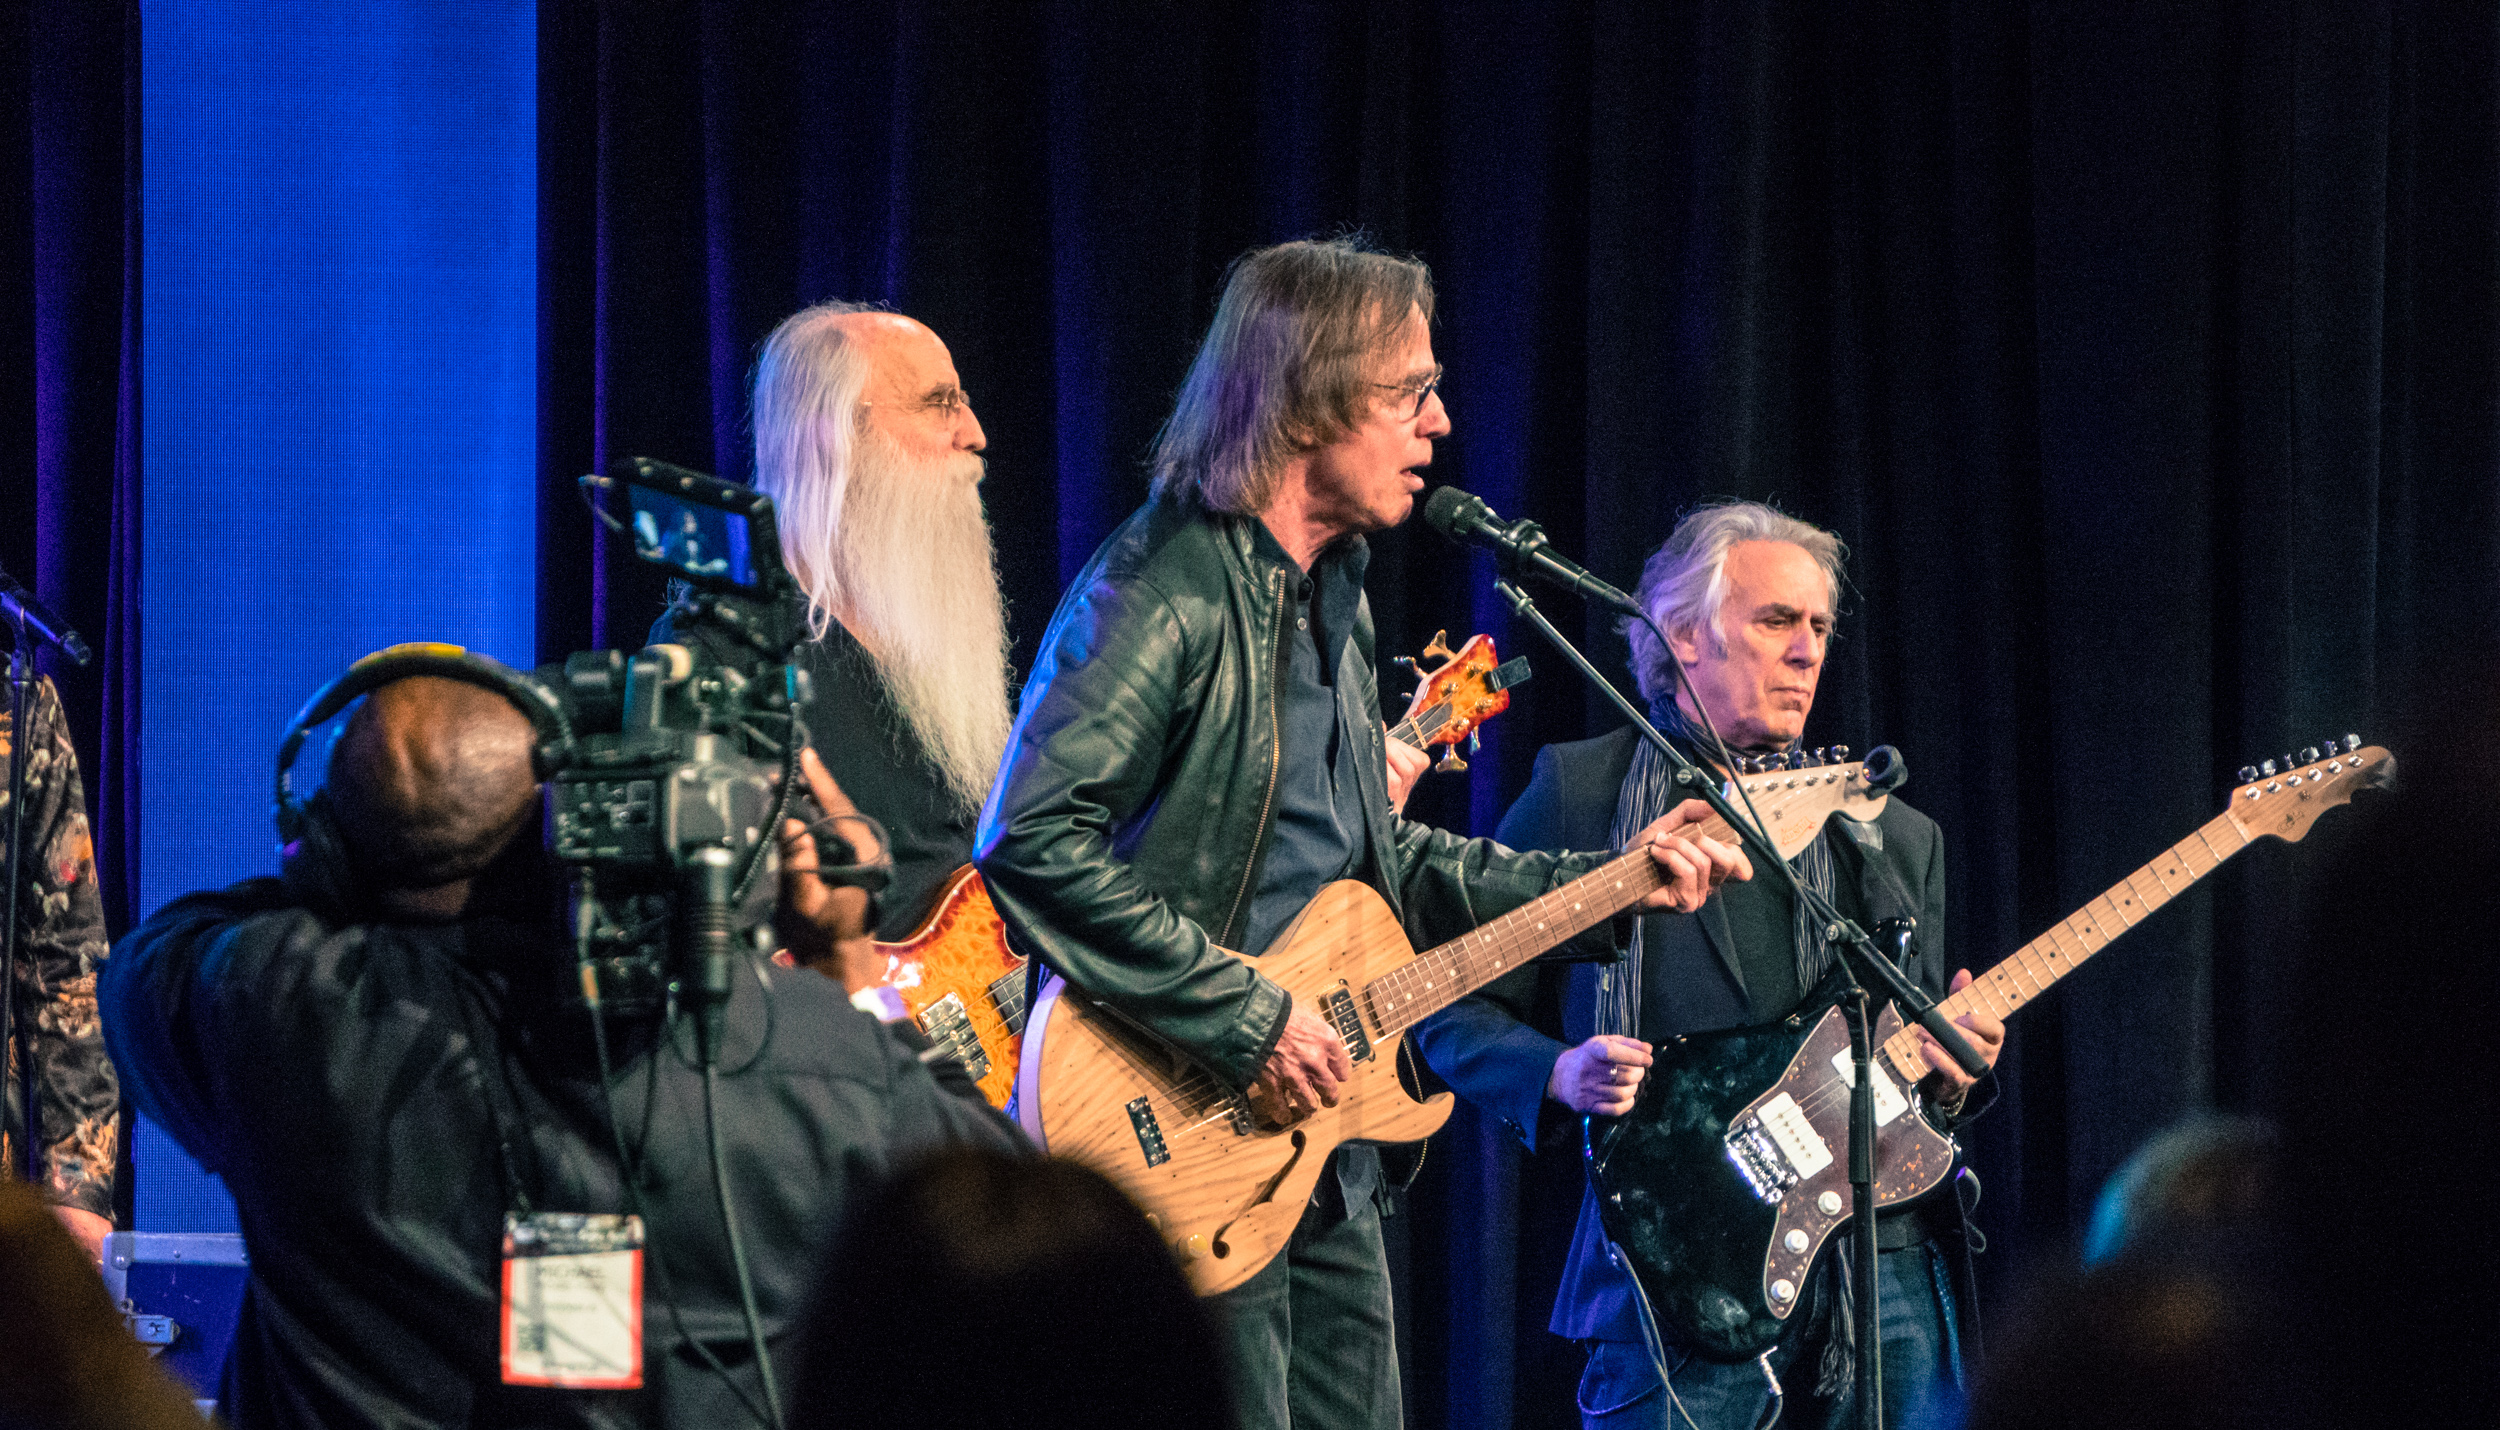 One of our personal highlights was getting to see the legendary Jackson Browne and his legendary band (The Section) perform at the TEC Awards on Saturday night.